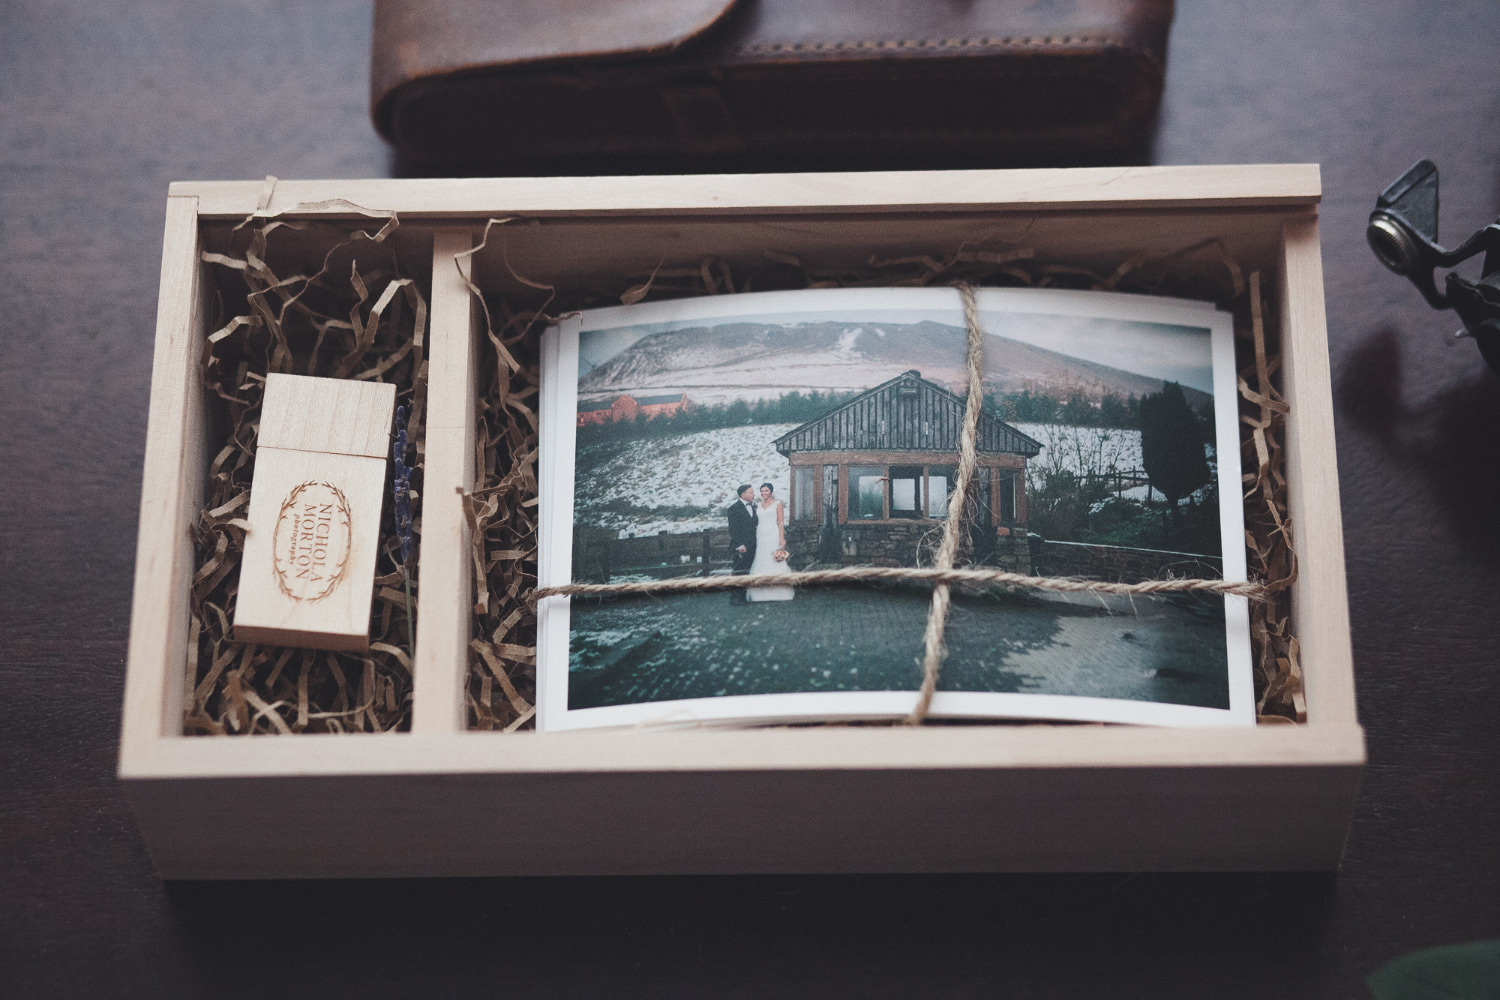 Wooden box for photographers for 6x4 prints